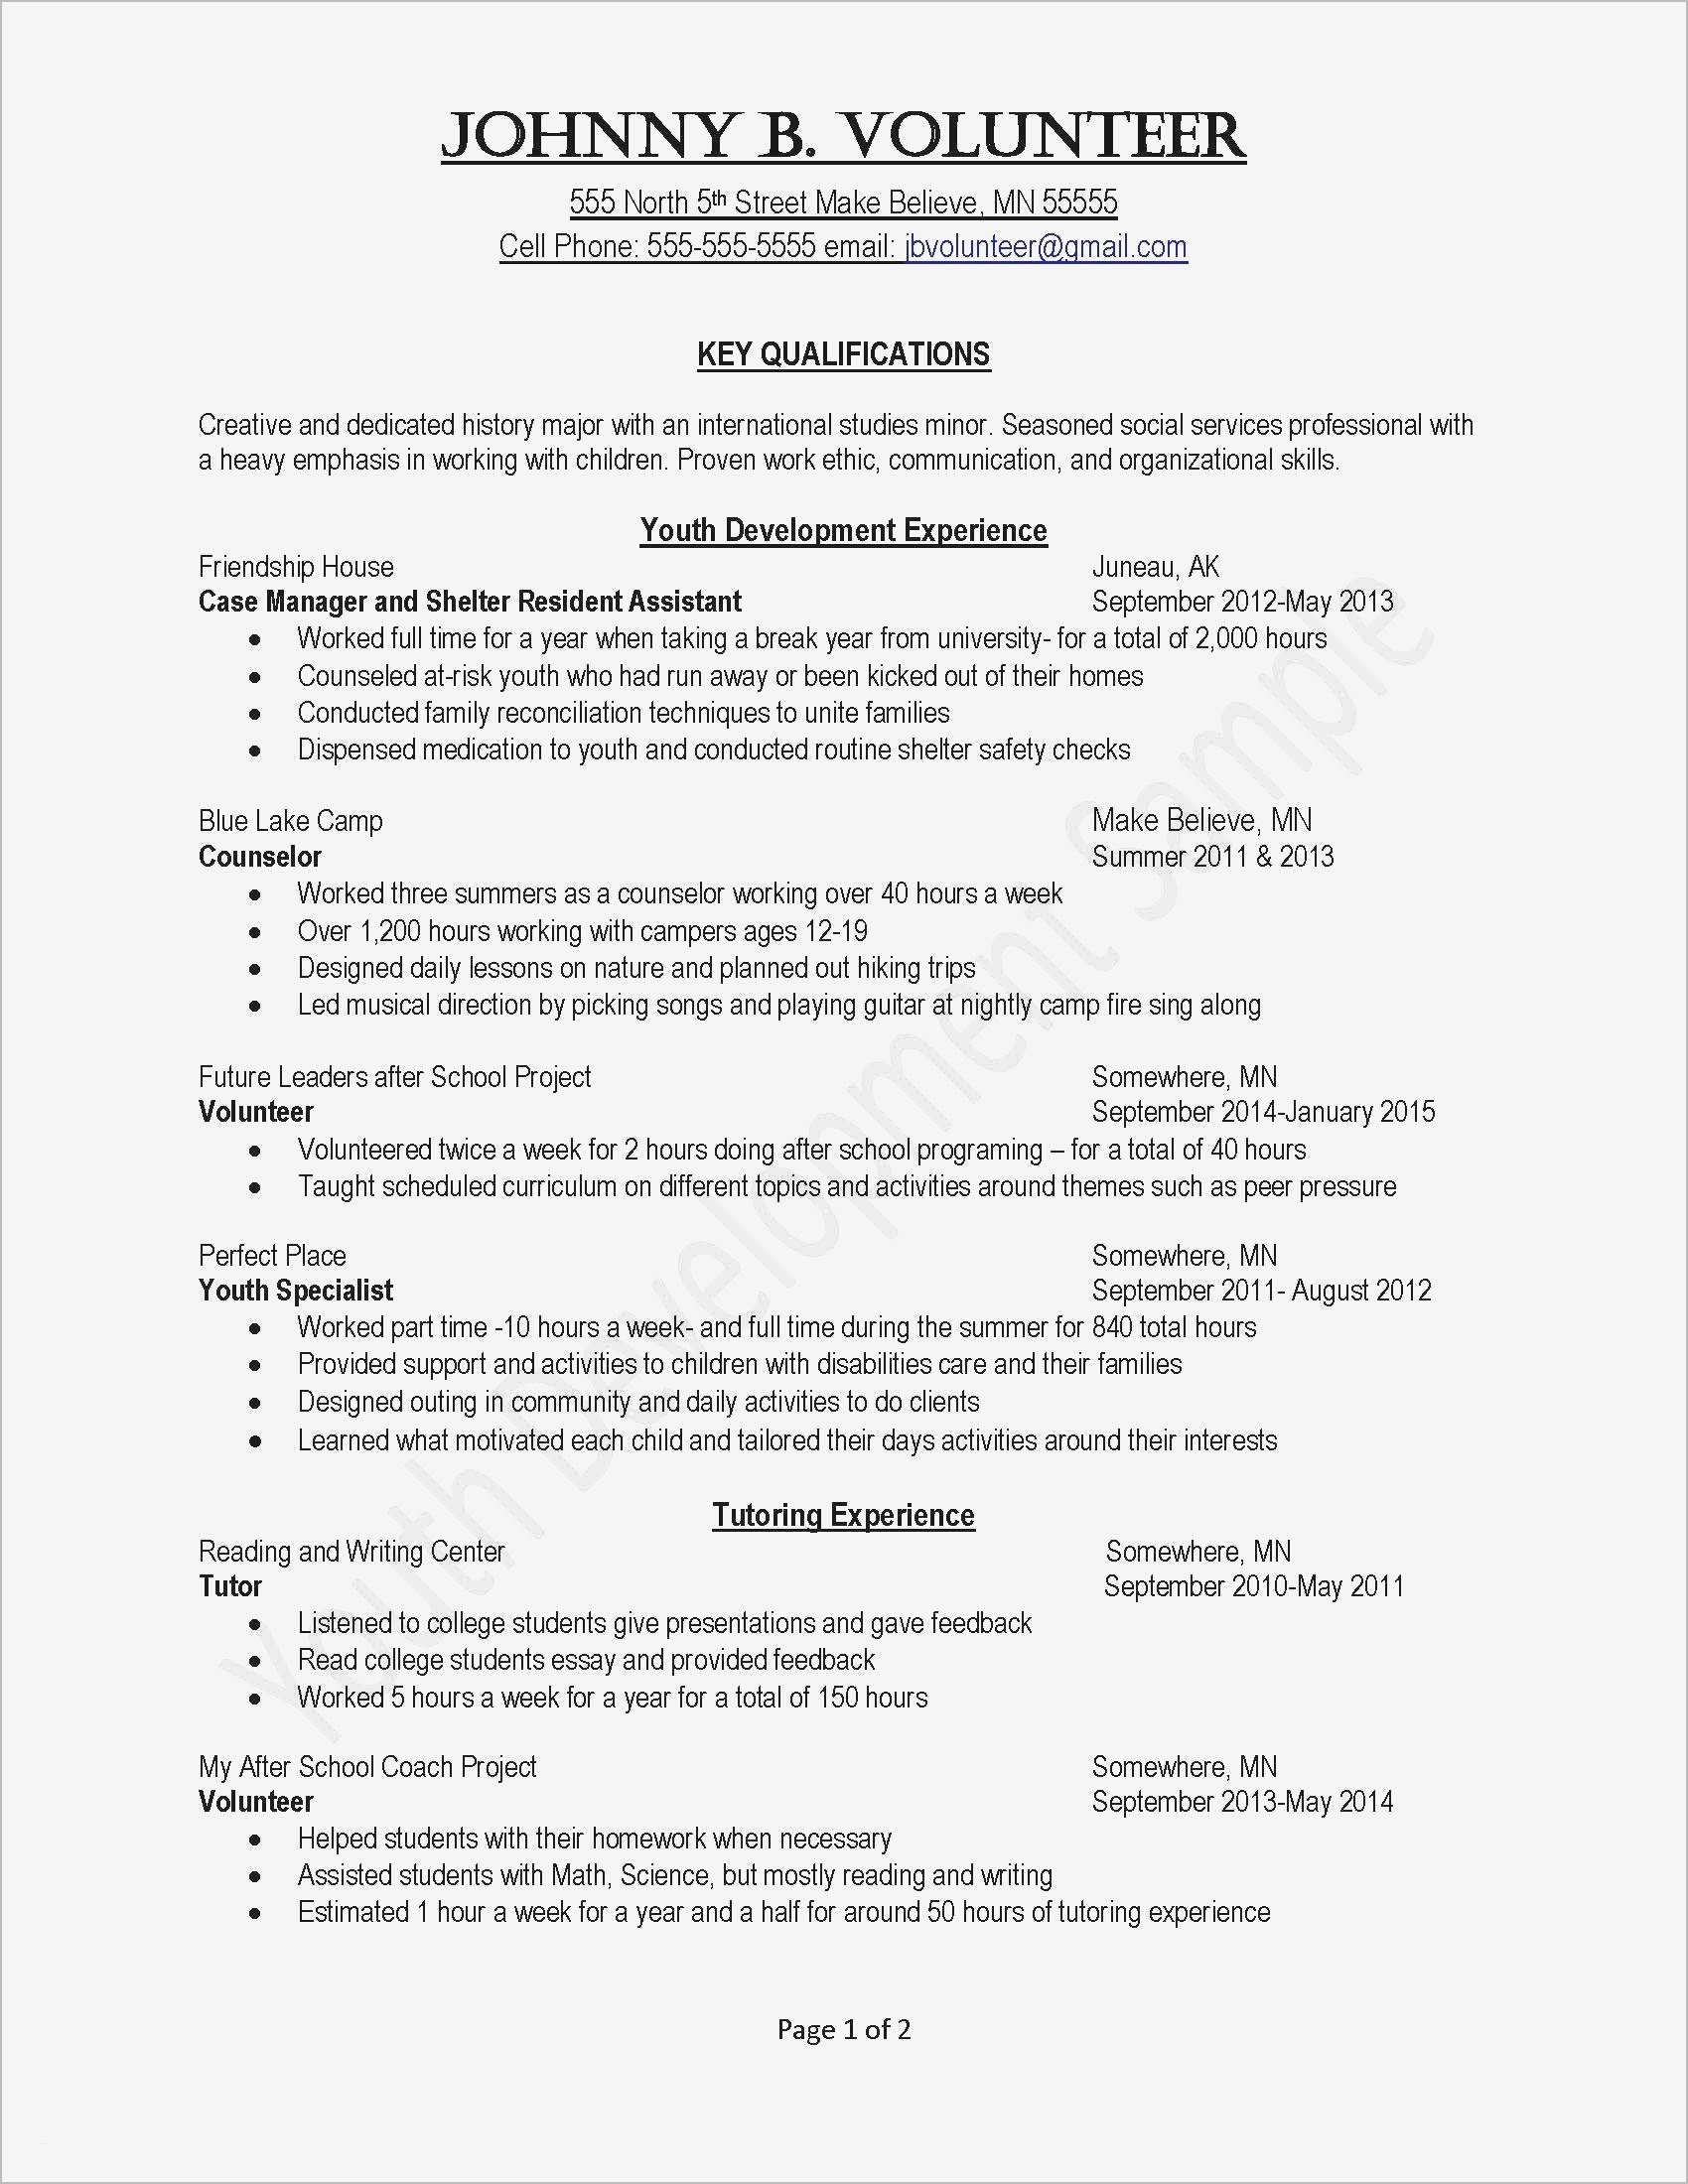 Recommendation Letter Template for Job - Job Re Mendation Letter Template Valid 1 Page Resume Templates